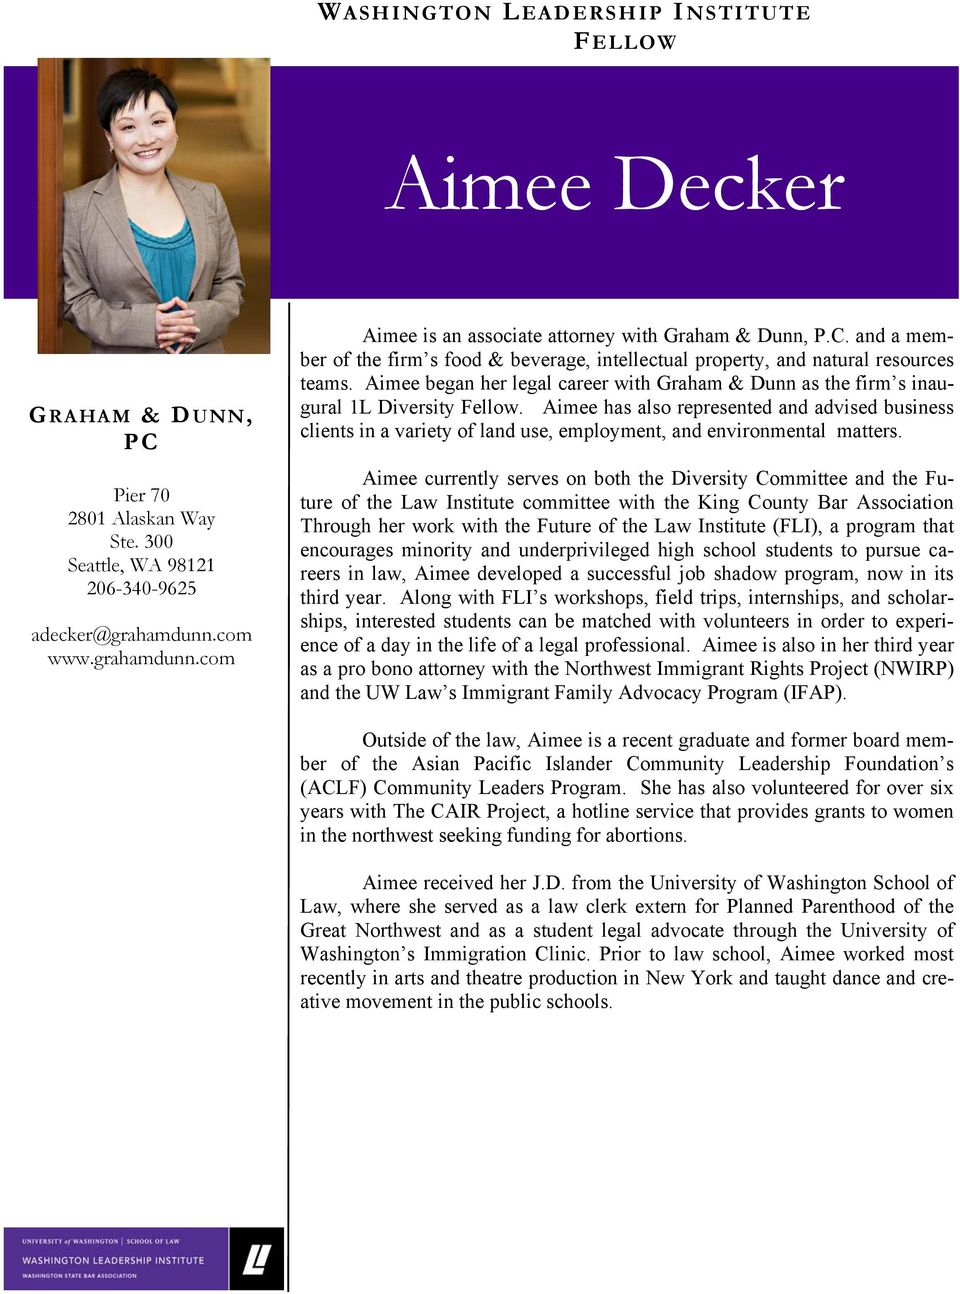 Aimee has also represented and advised business clients in a variety of land use, employment, and environmental matters.